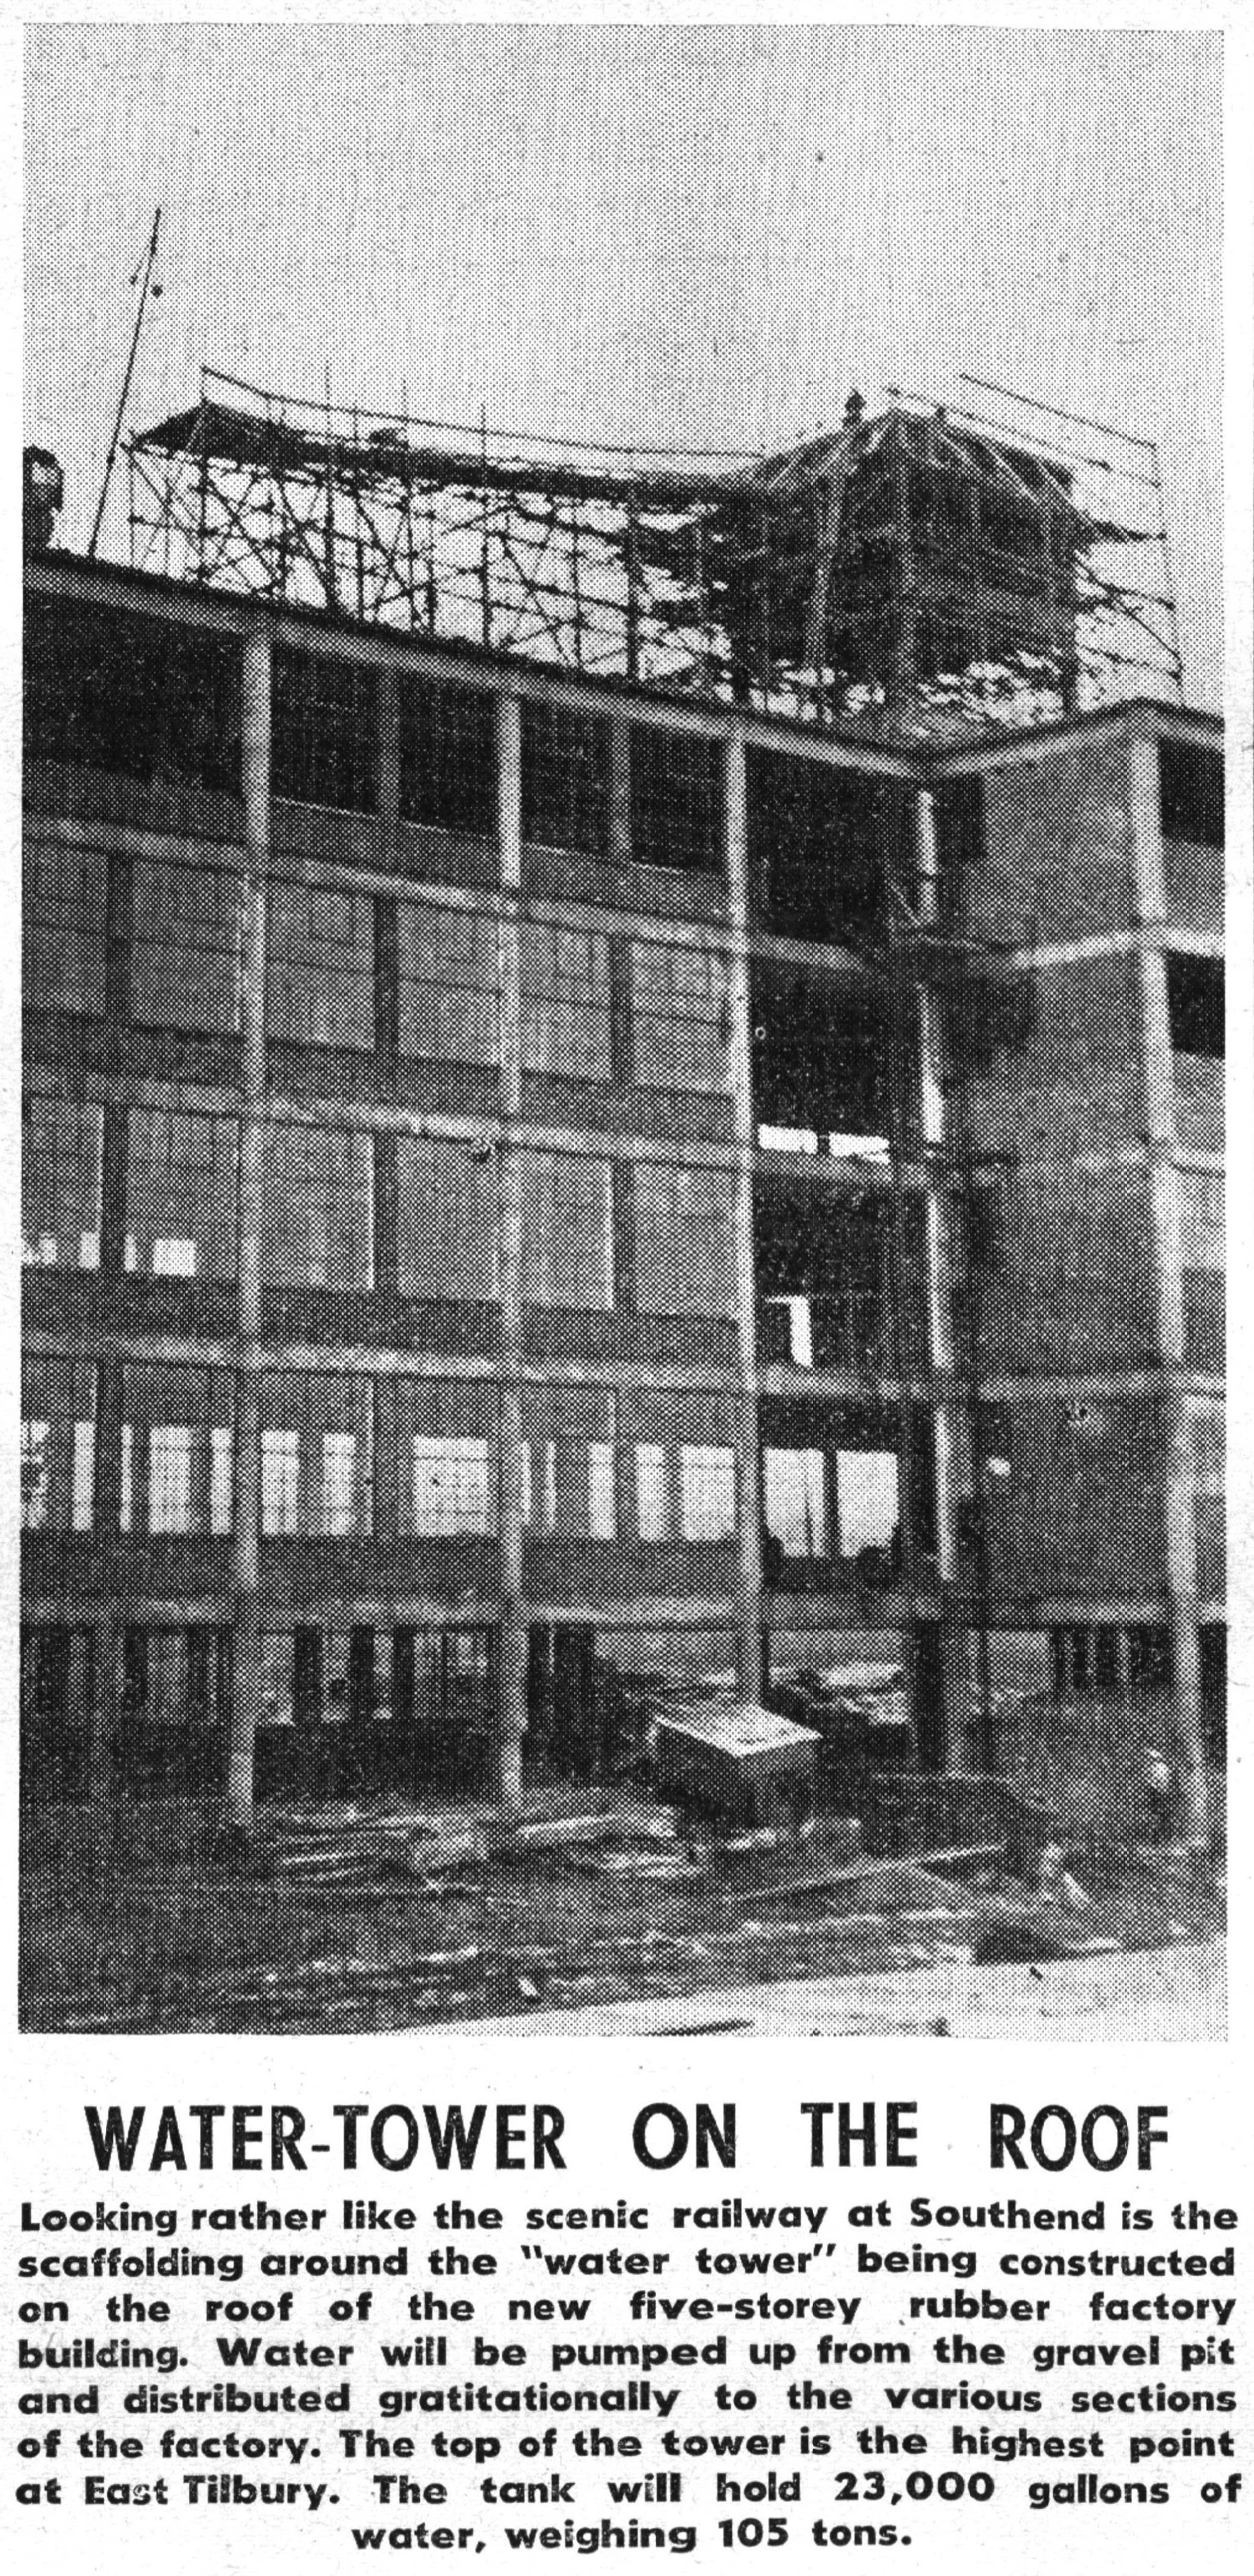 Bata Factory East Tilbury Rubber Factory Building 34 Water Tower Under  Construction Feb 3rd 1939,